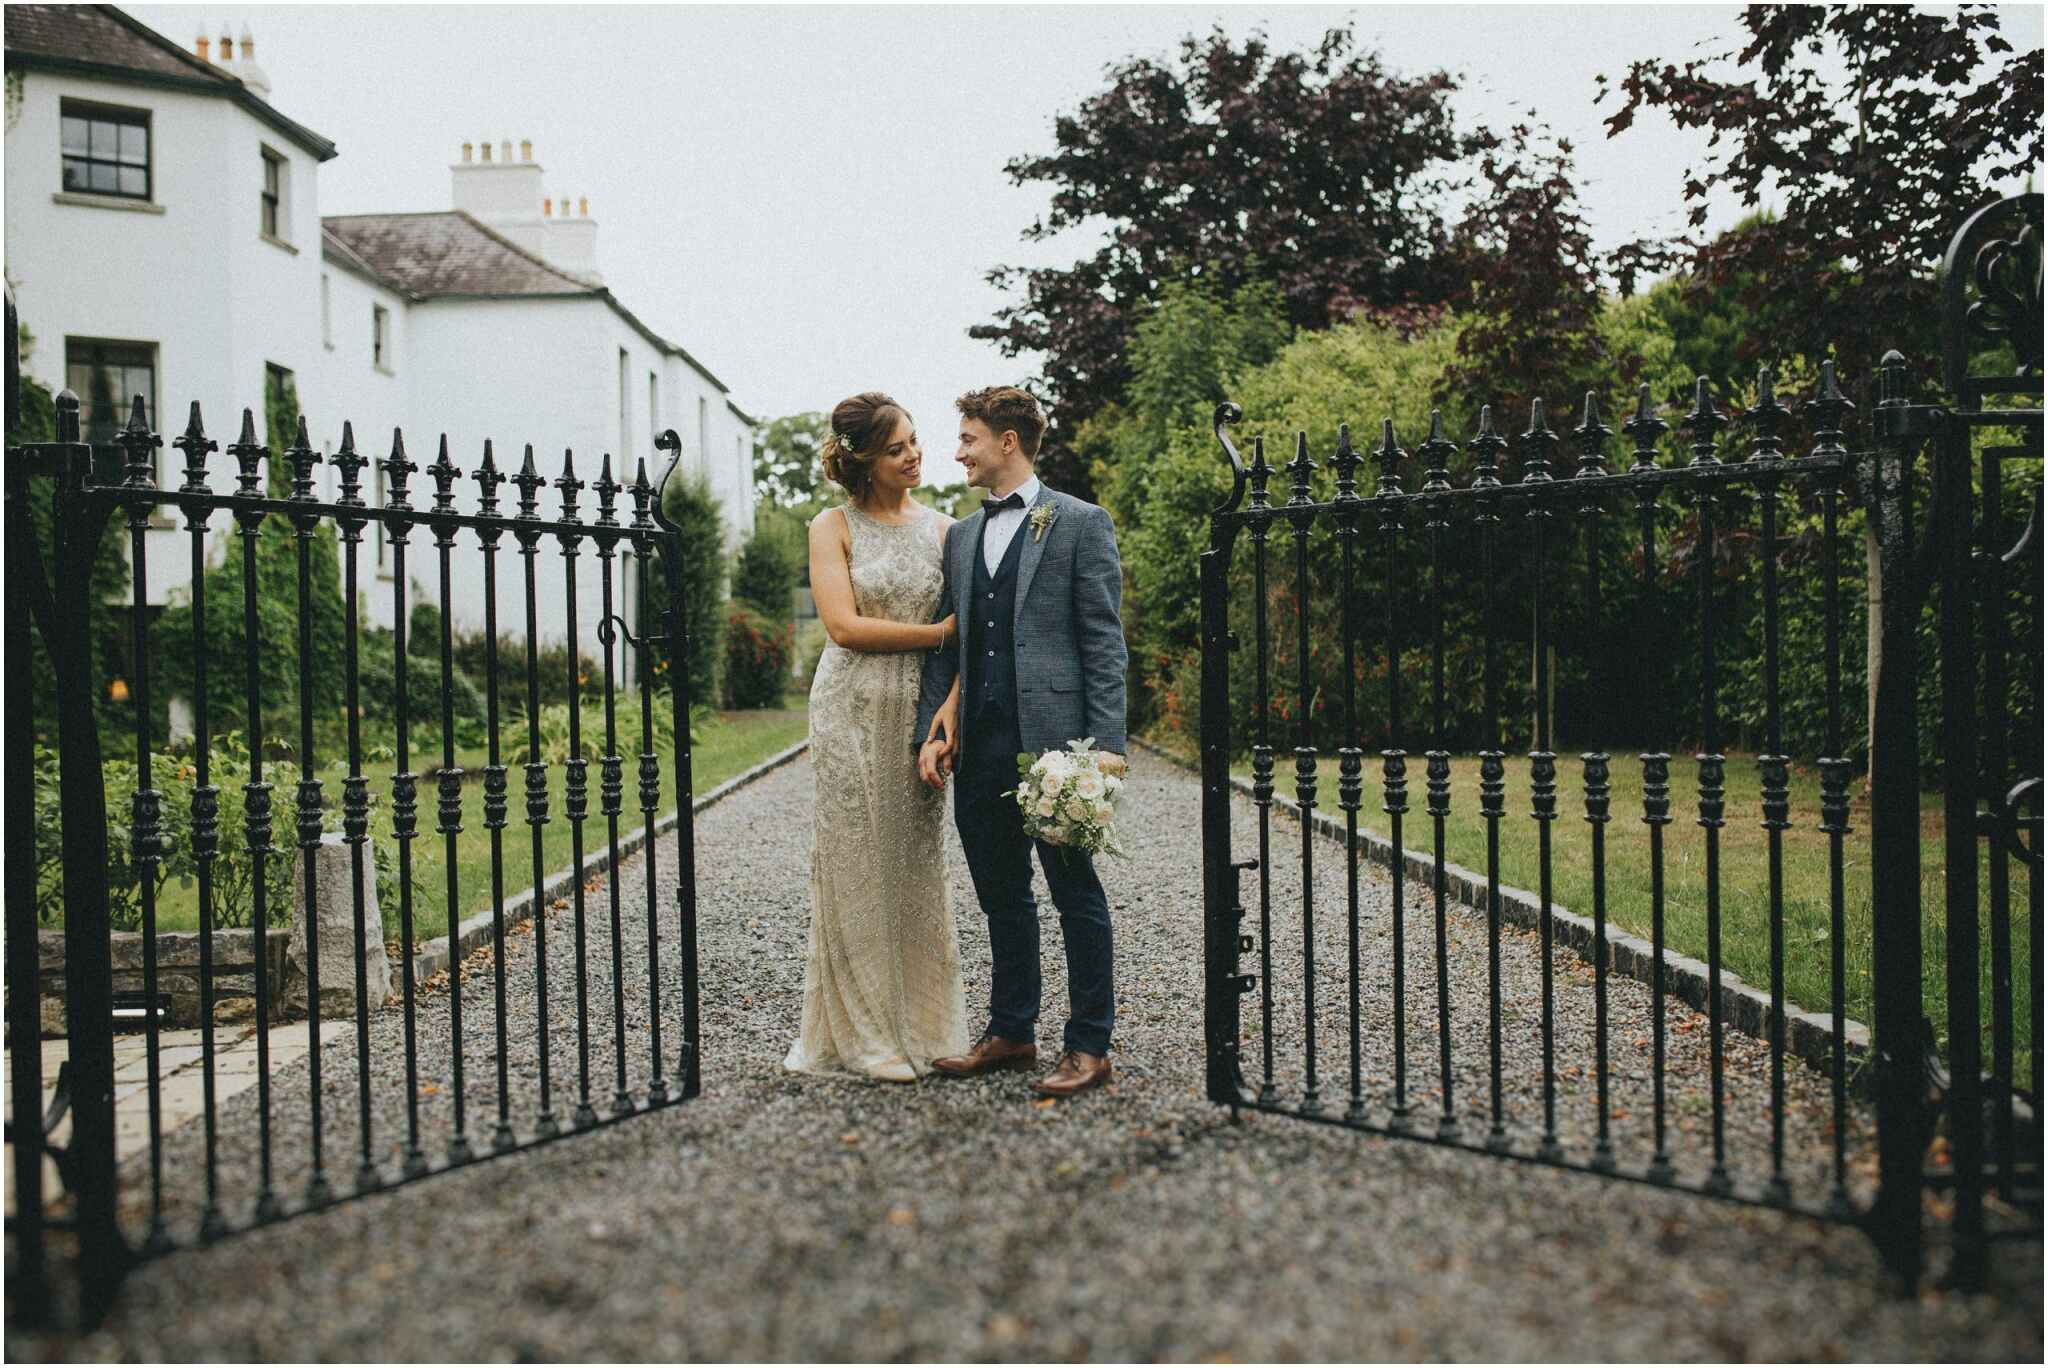 Barberstown castle Ireland Irish Castle Wedding00066 - Fun and Relaxed wedding and elopement photography in Ireland, perfect for adventurous and outdoorsy couples